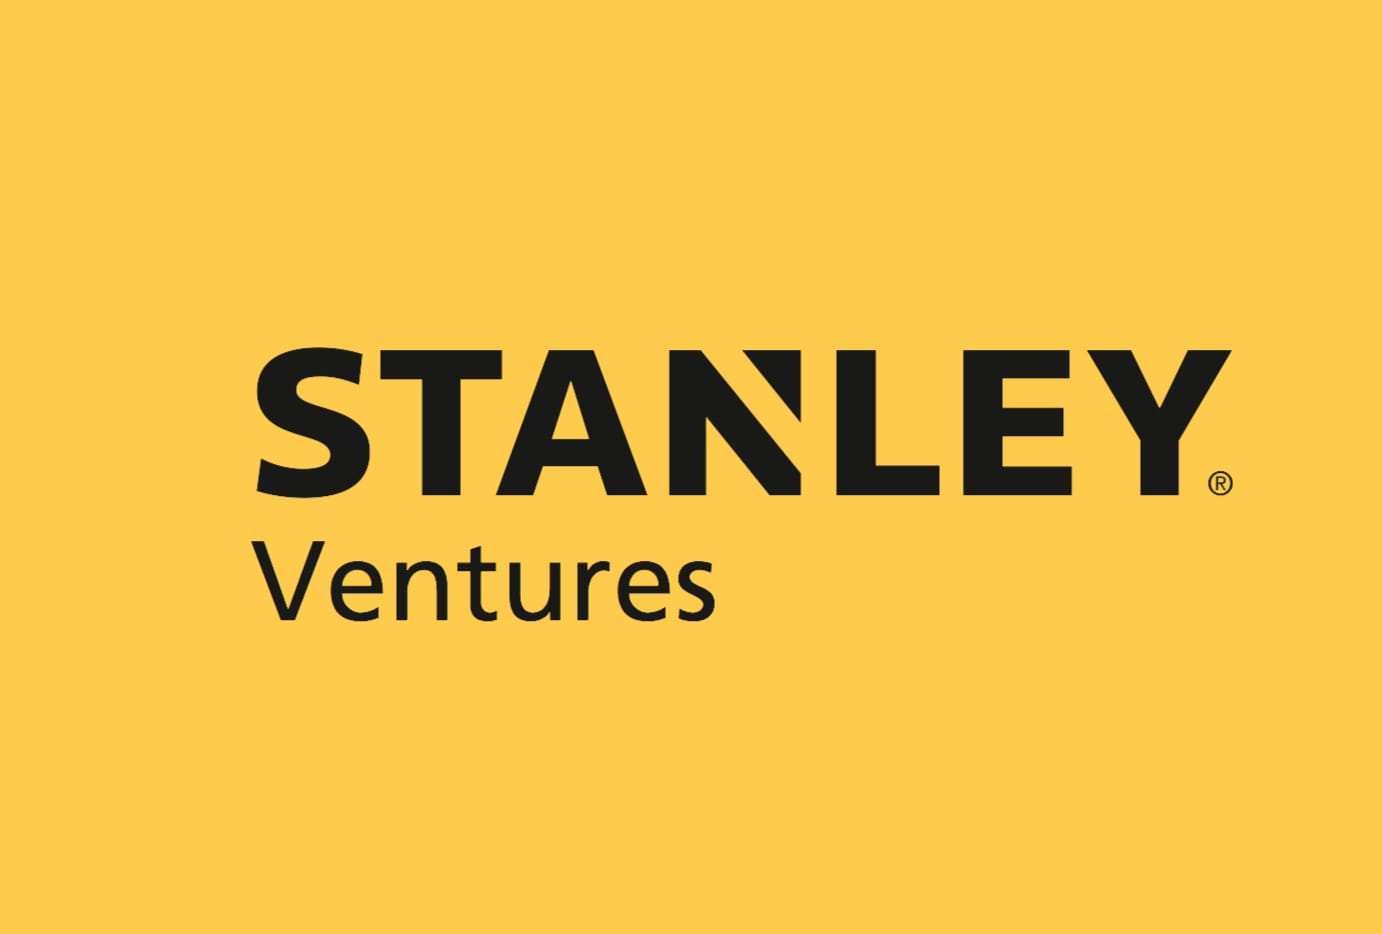 Why Is Stanley Black & Decker So Deep Into 3D Printing?